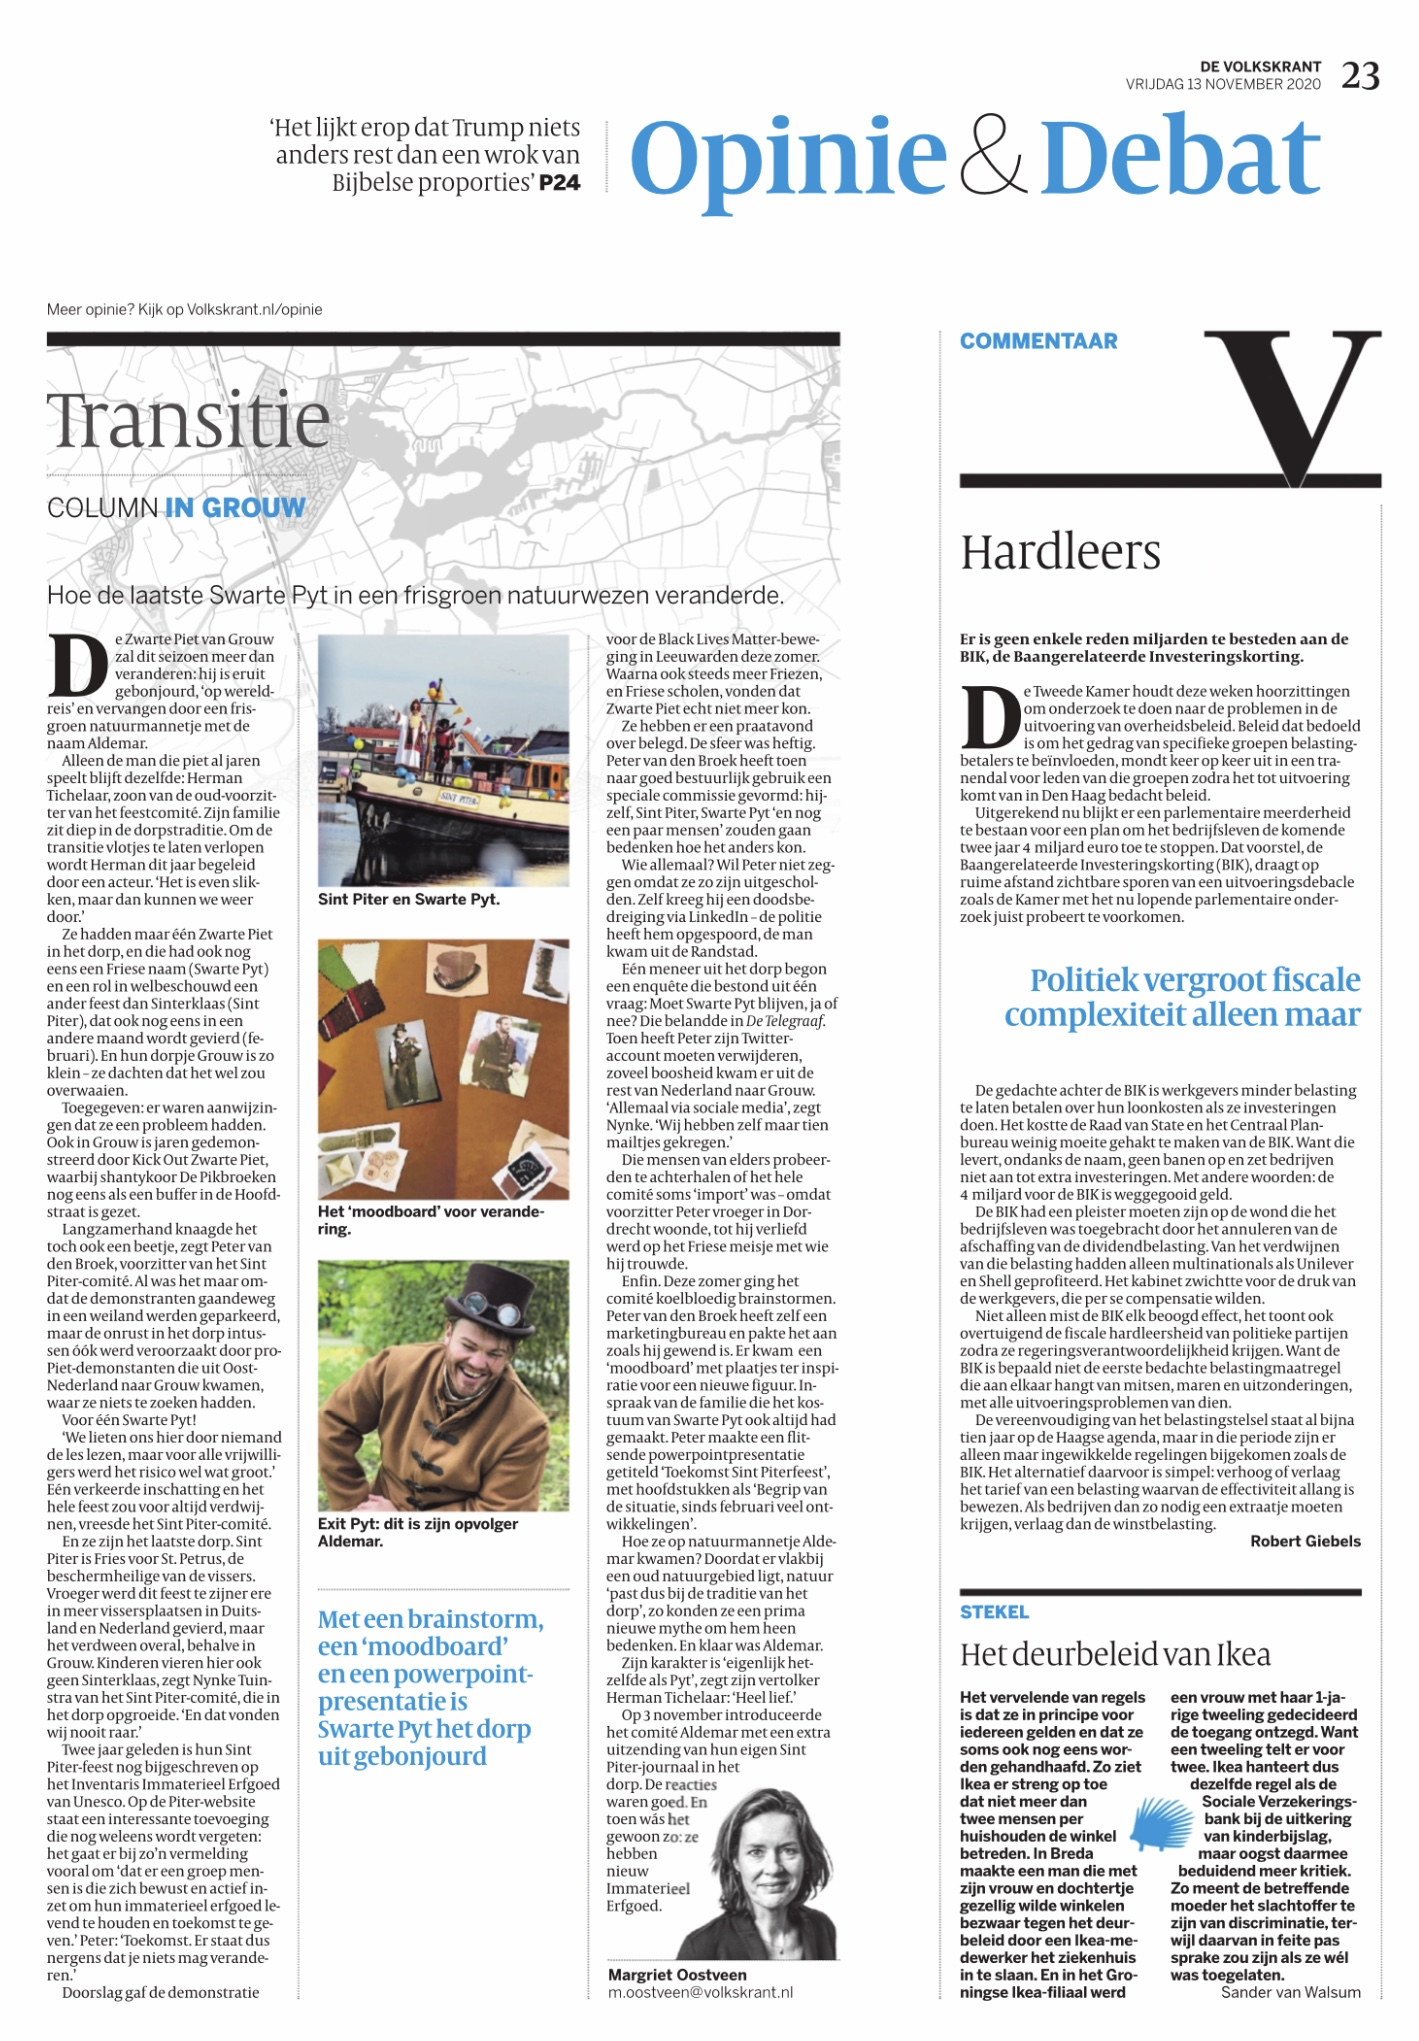 Volkskrant transitie Sint Piterfeest